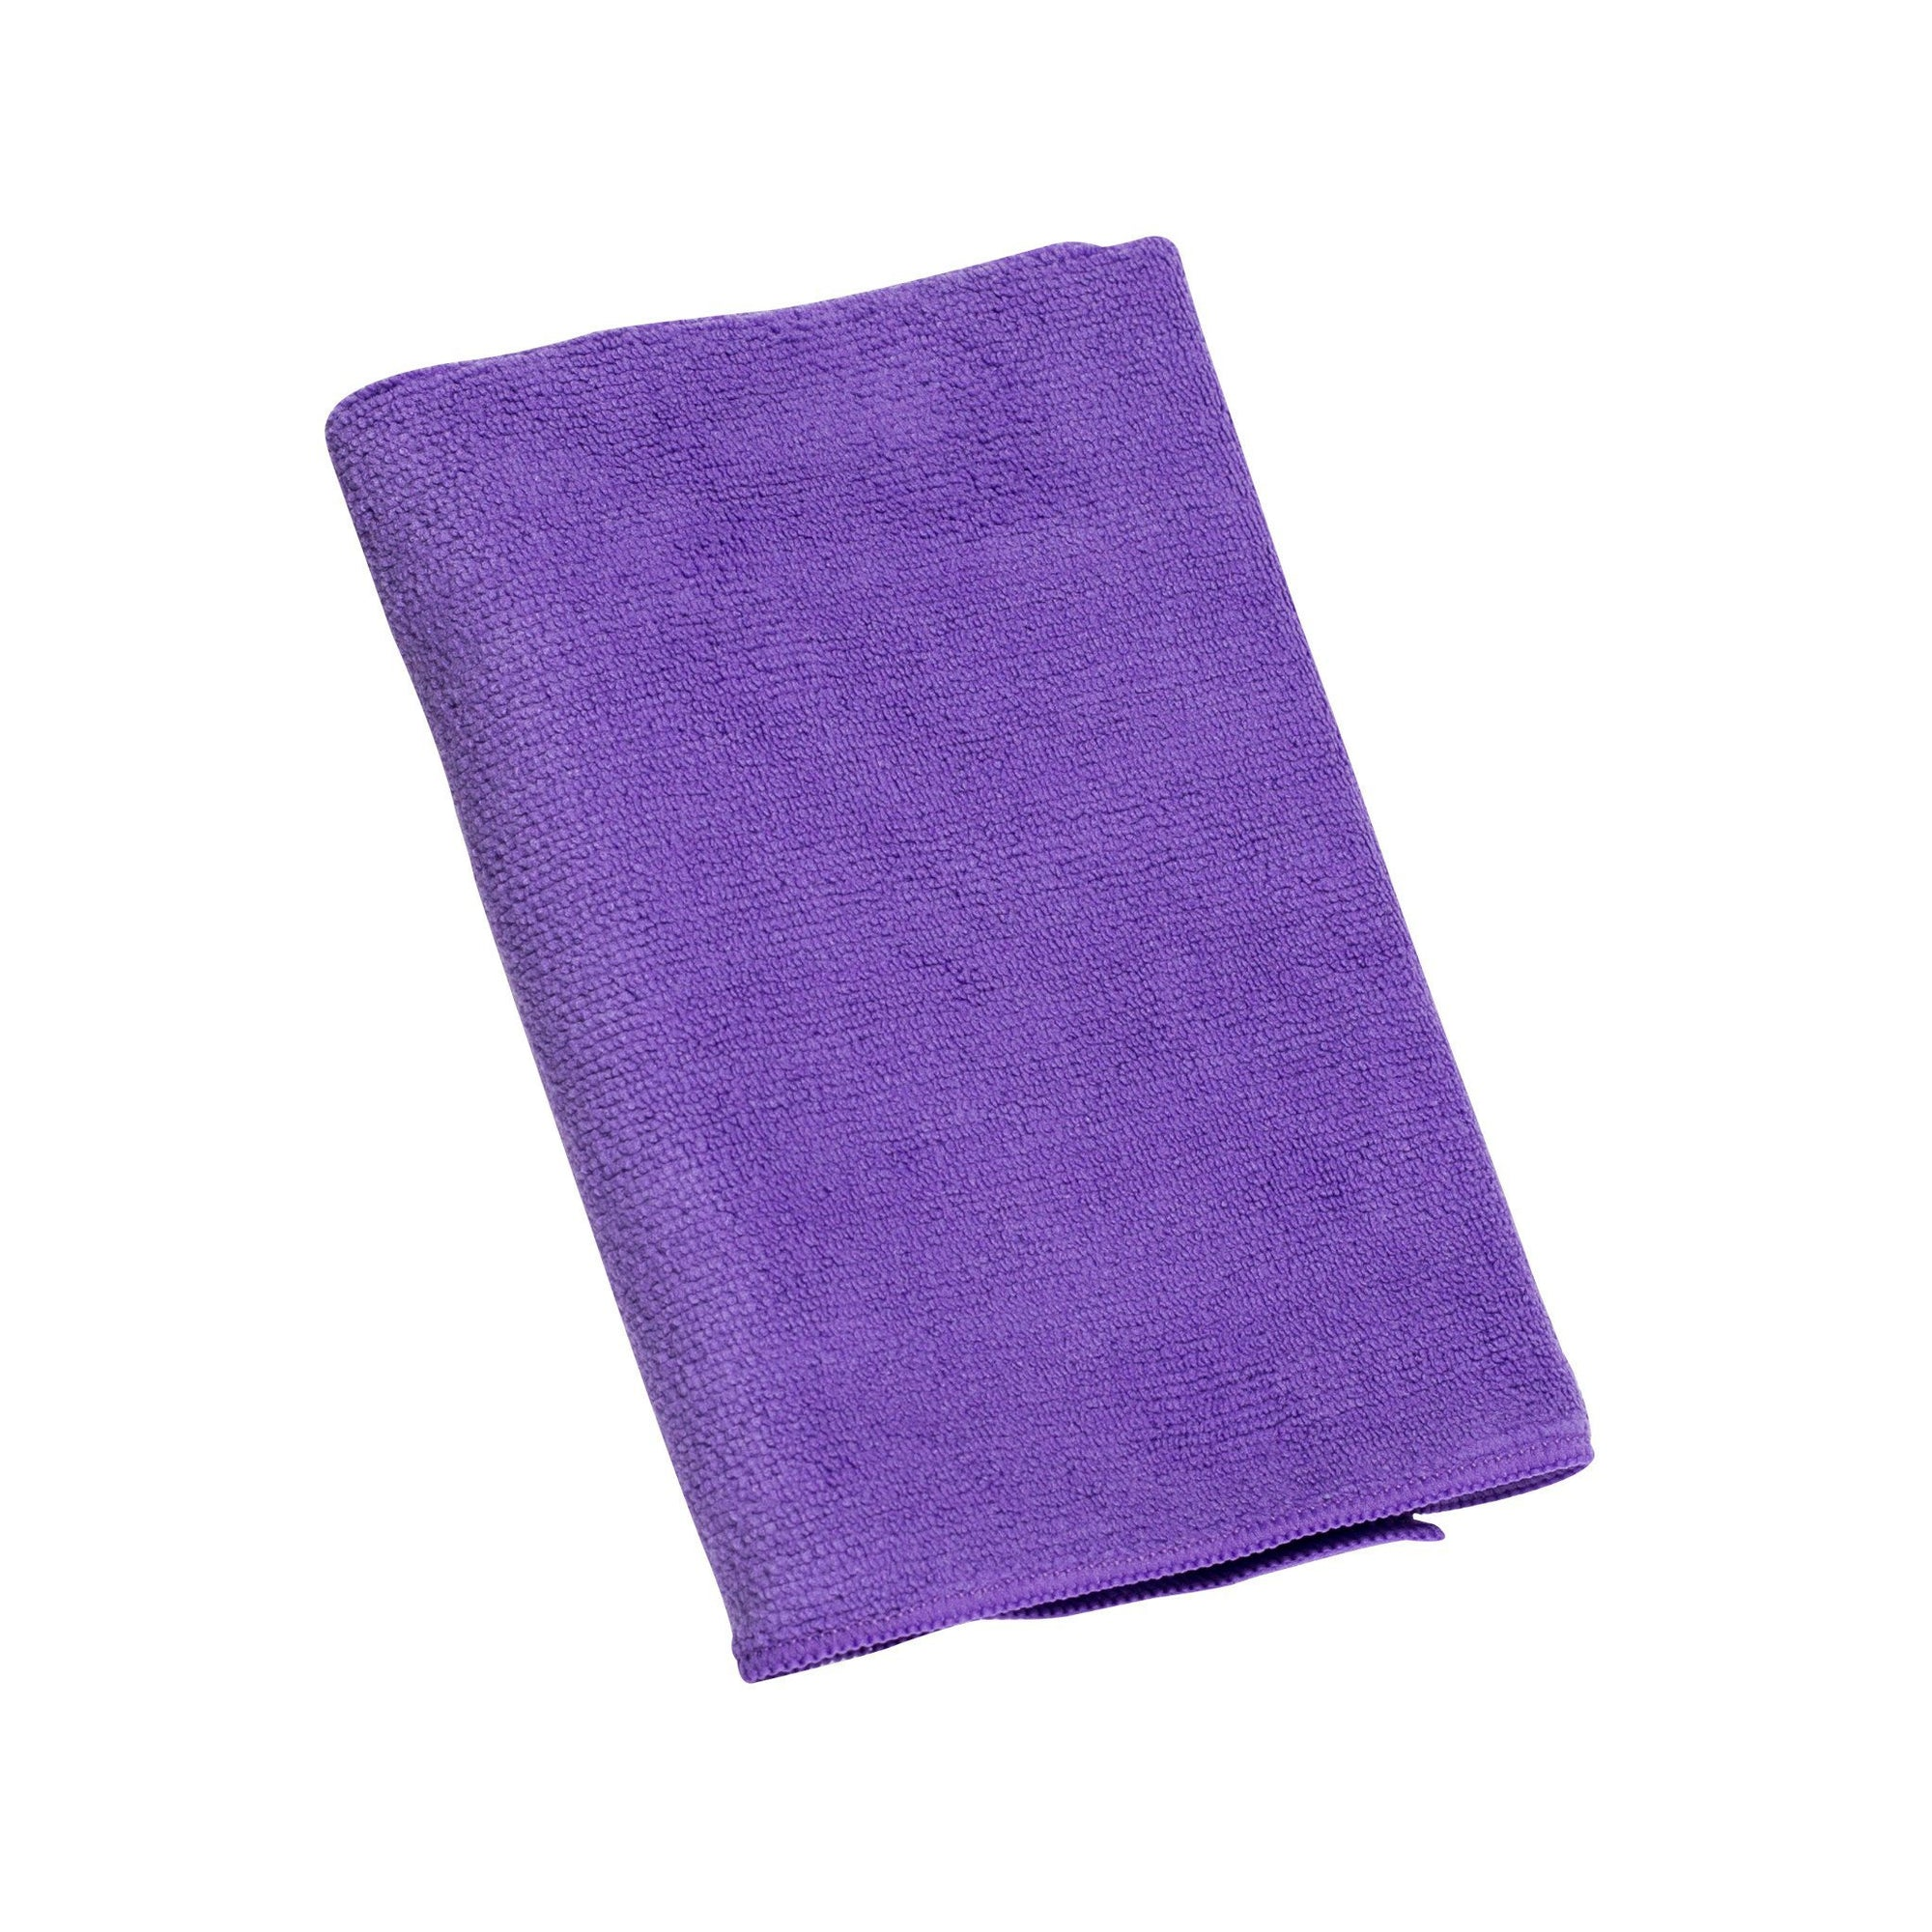 UCC Hybrid Detailing Towel Purple (9546376589)